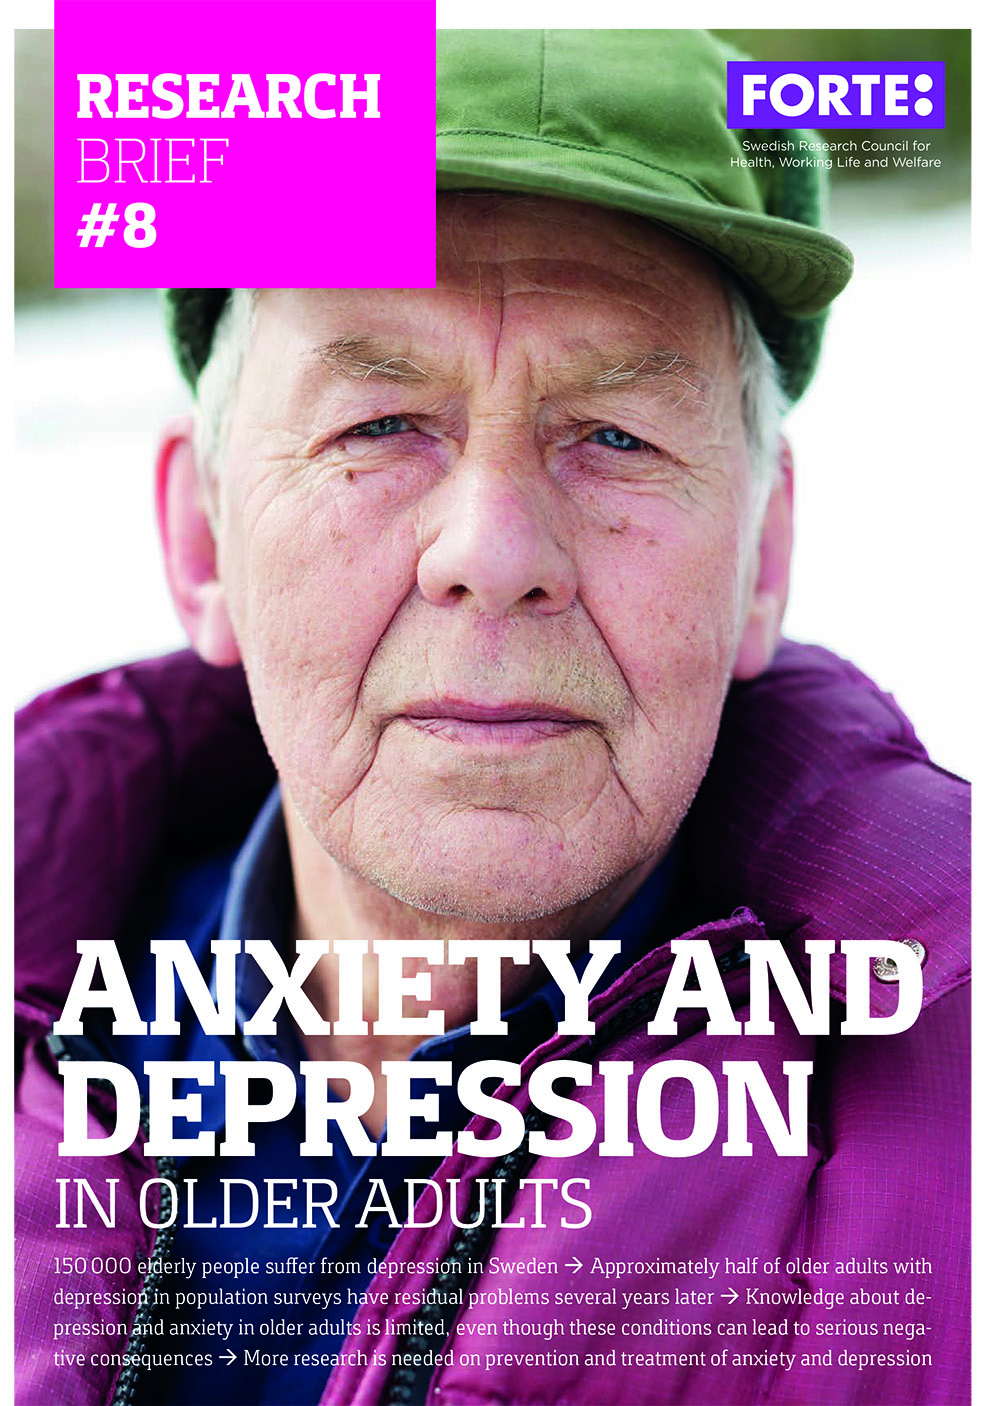 Research brief: Anxiety and depression in older adults